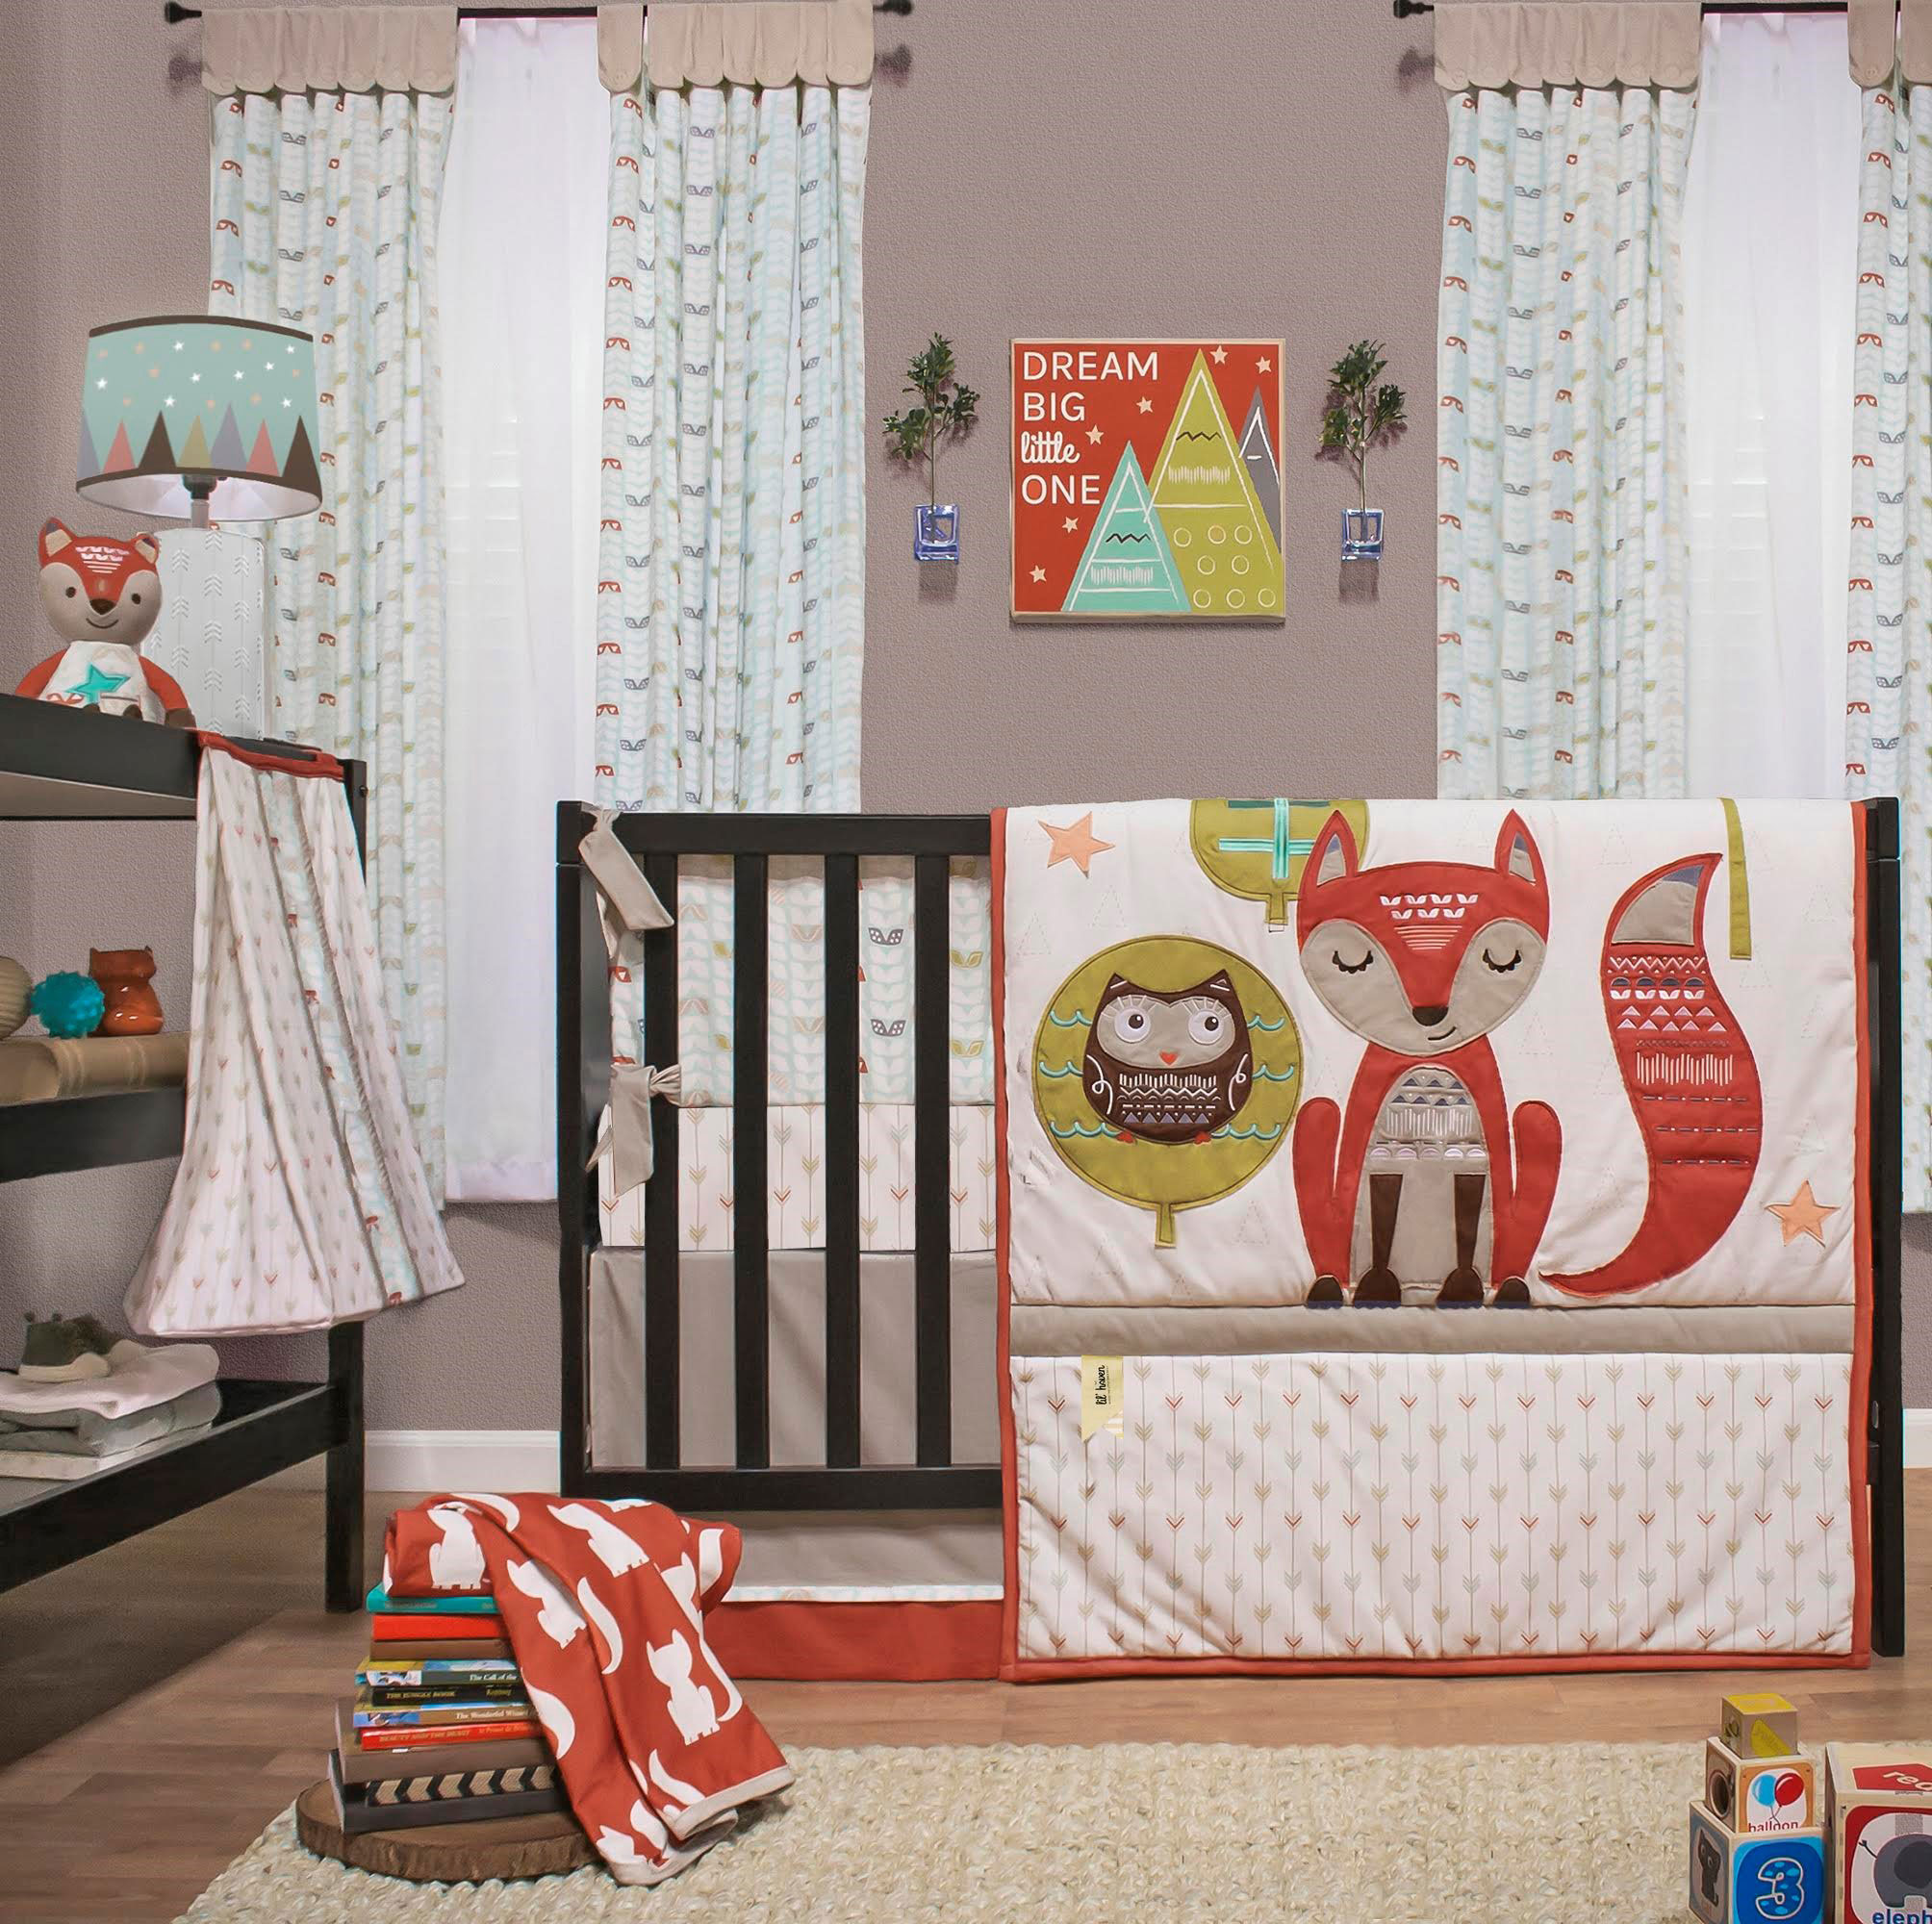 Little Haven Clever Fox Crib Bedding Set - Woodland Creatures Theme - 4 Piece Forest Animal Baby Bedding Collection